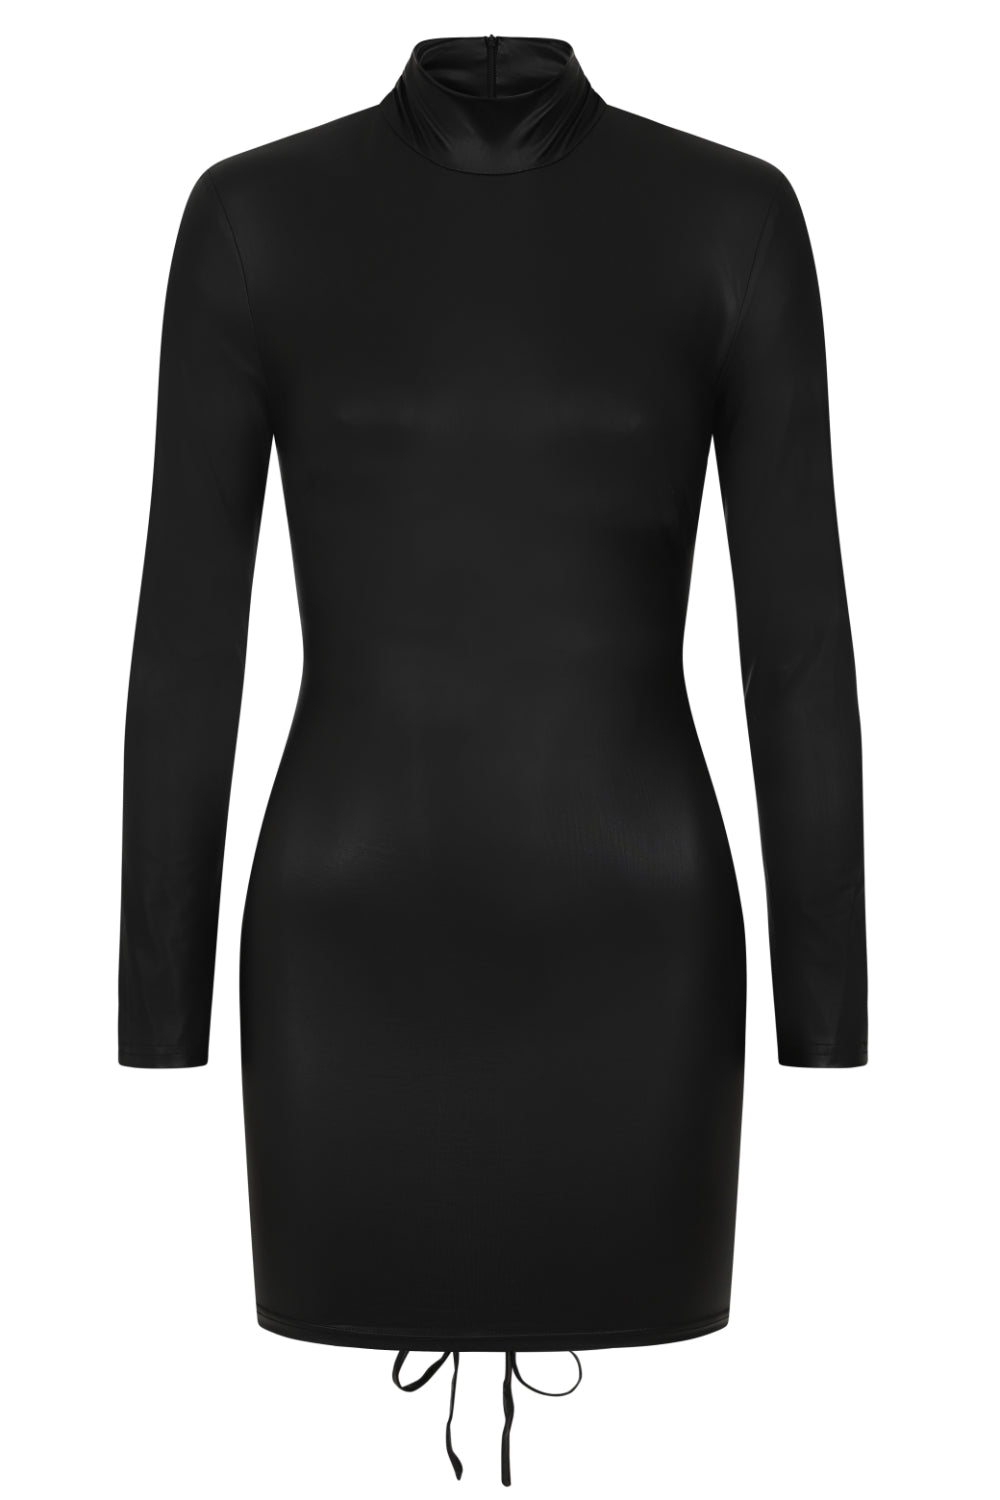 Party In The Back Black Wet Look Long Sleeve Ruched Dress